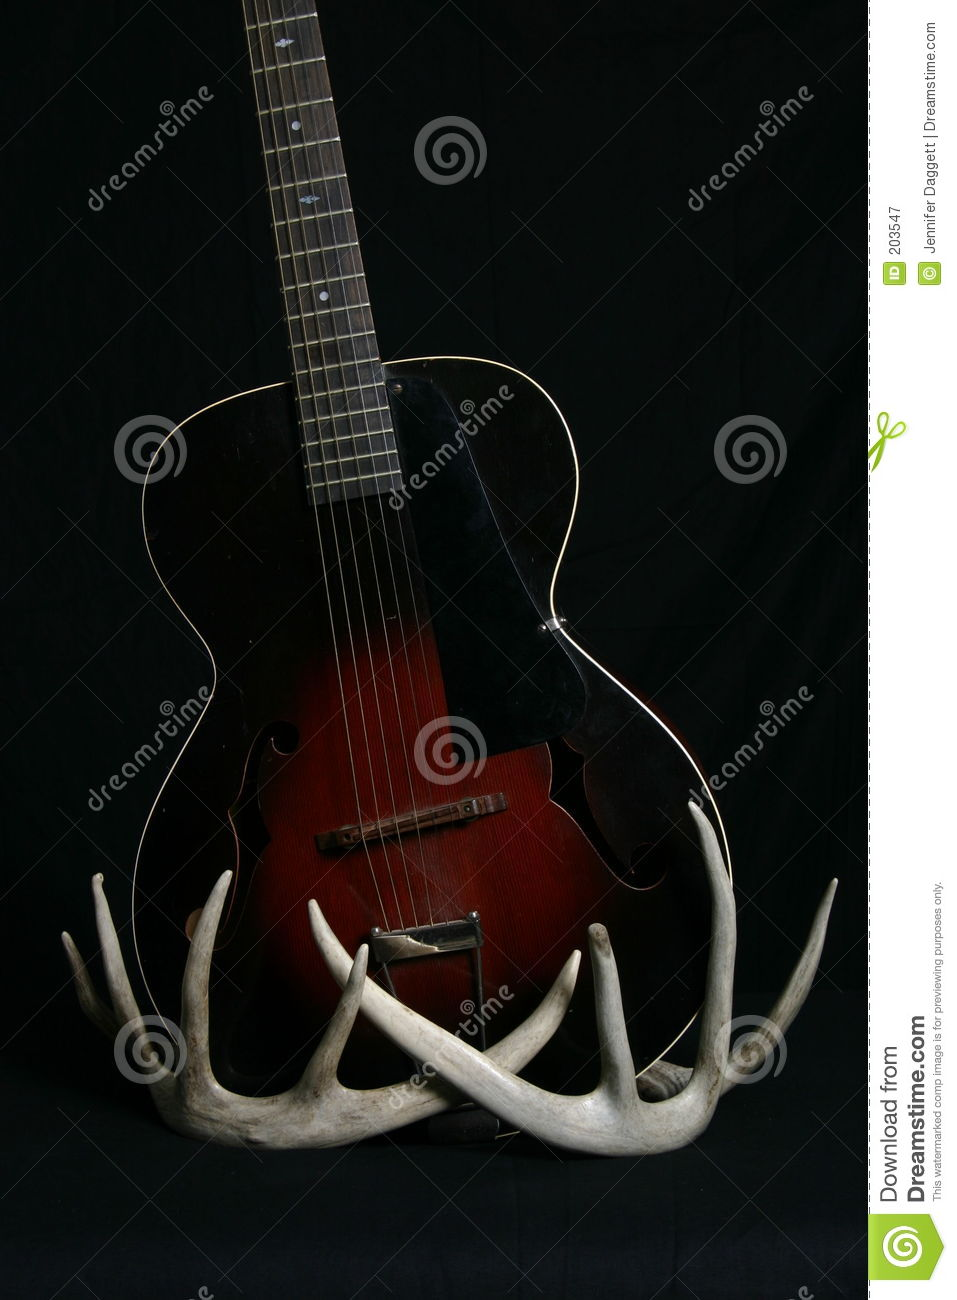 Acoustic Guitar Royalty Free Stock Photography - Image: 203547